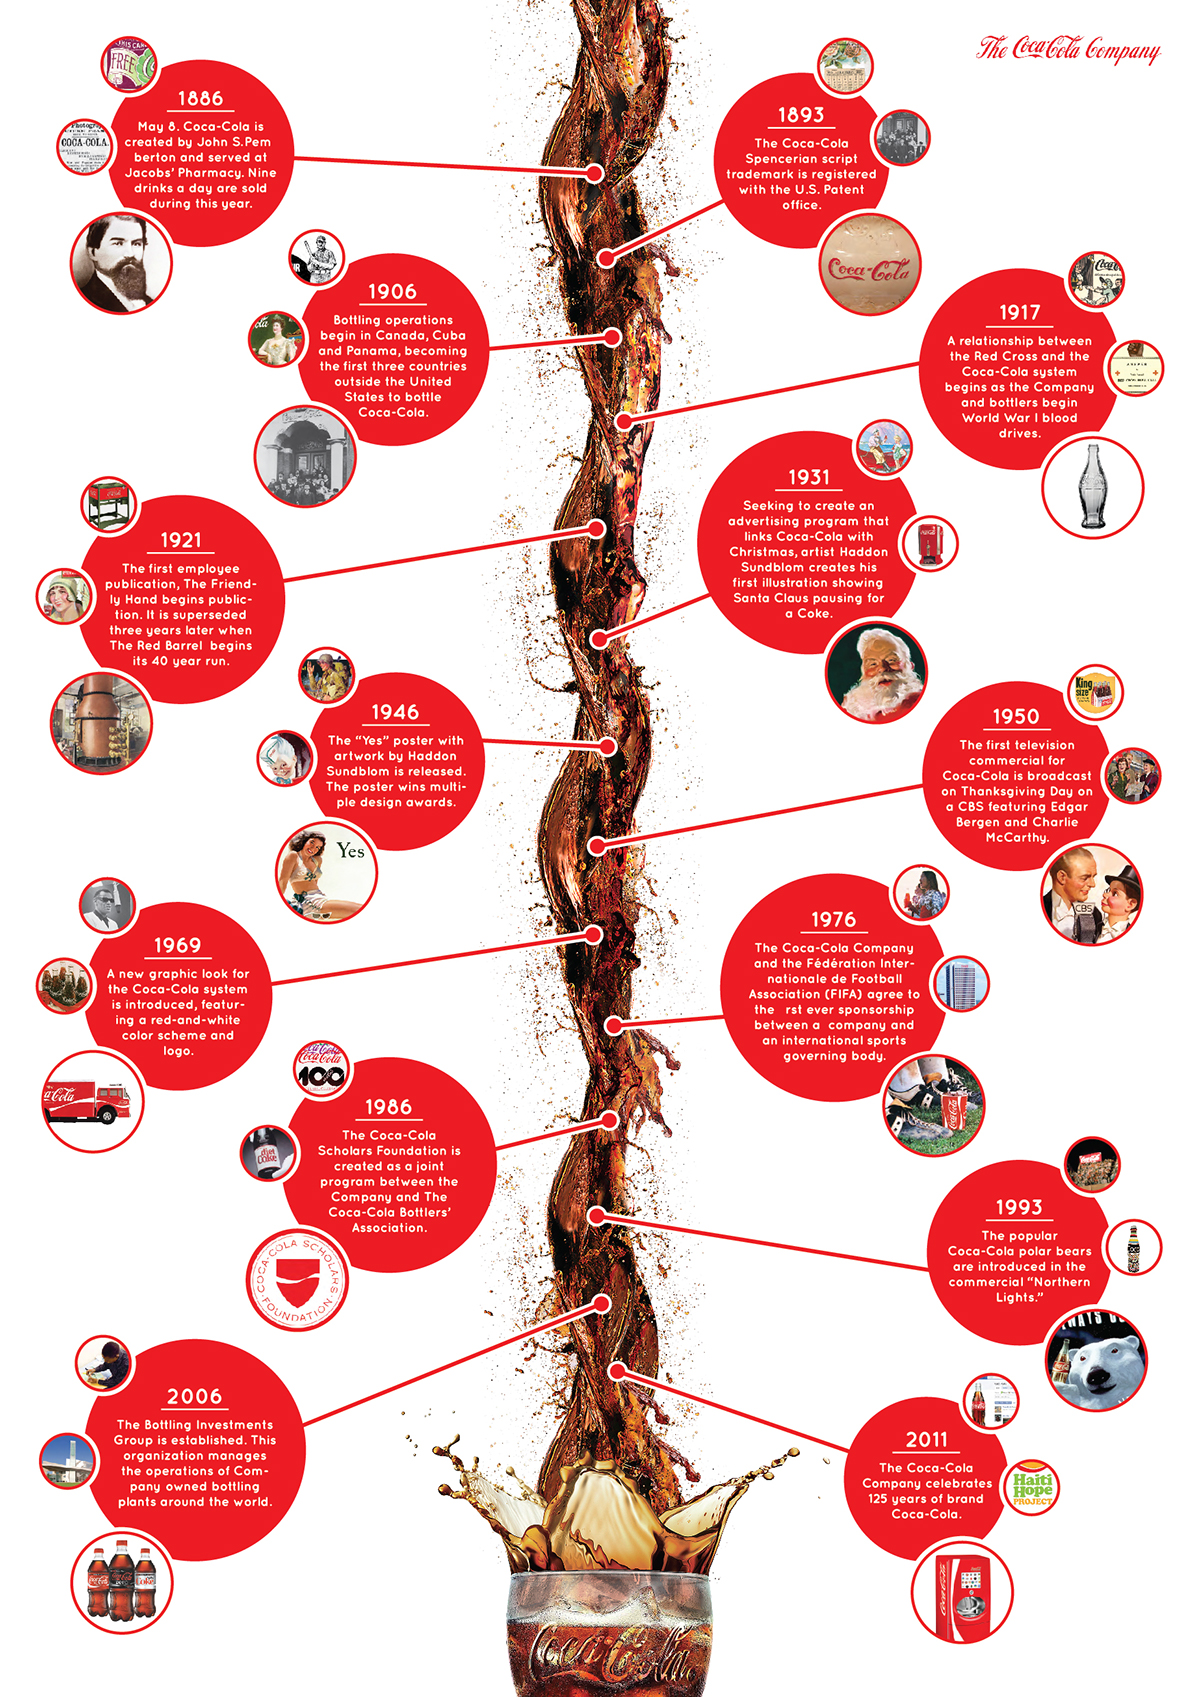 Timeline Infographic of the Coca-Cola Company history on